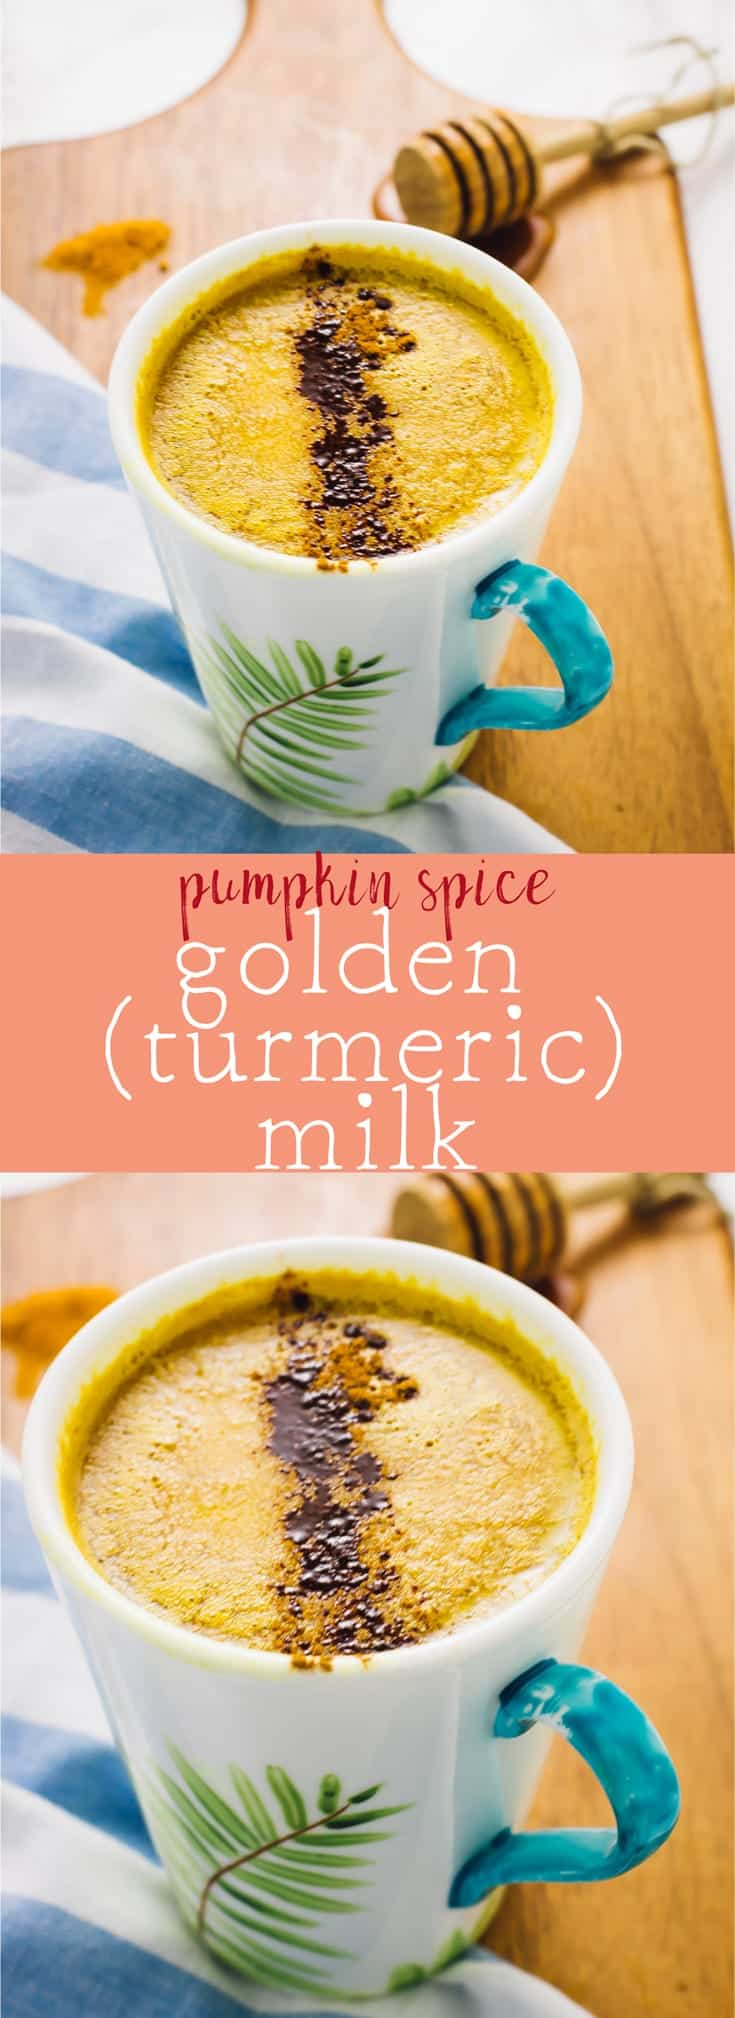 Pumpkin Spice Golden Milk (Turmeric Milk) is the most delicious and nutrient-dense milk drink you'll ever taste! It's the perfect night cap and is vegan! via https://jessicainthekitchen.com